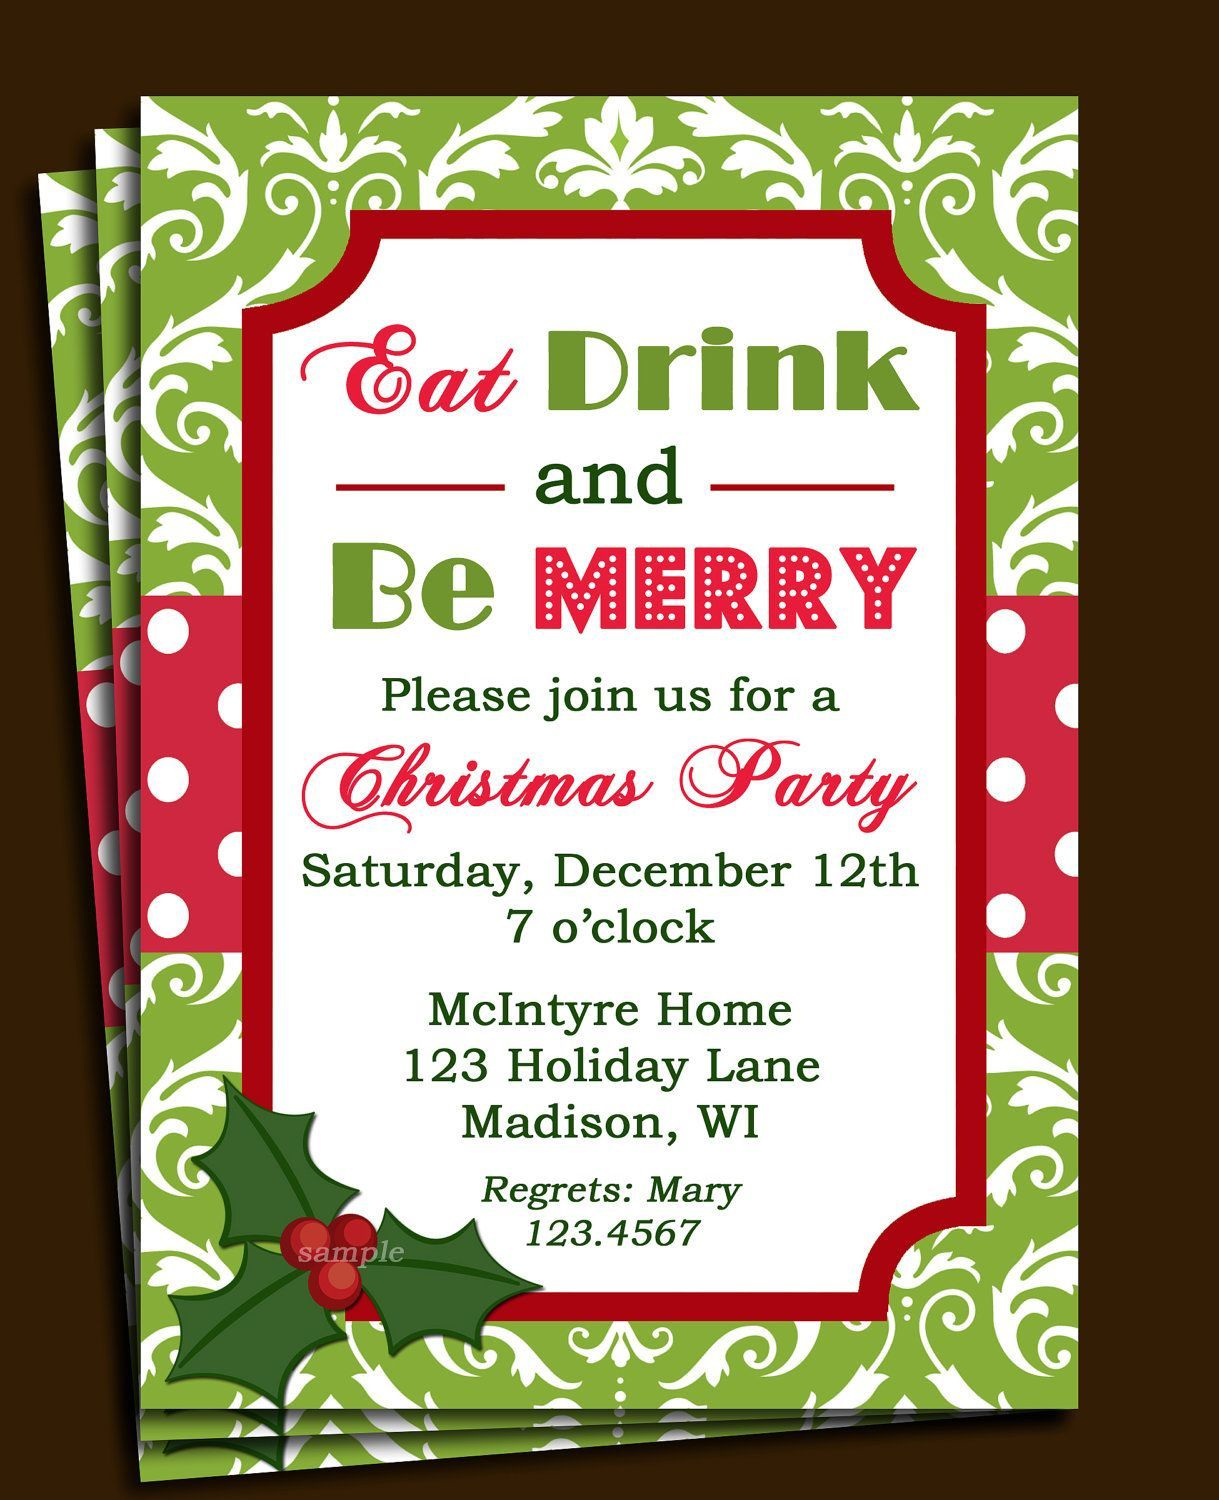 010 Sensational Holiday Party Invite Template Word Photo  Cocktail Invitation Wording Sample Microsoft ChristmaFull